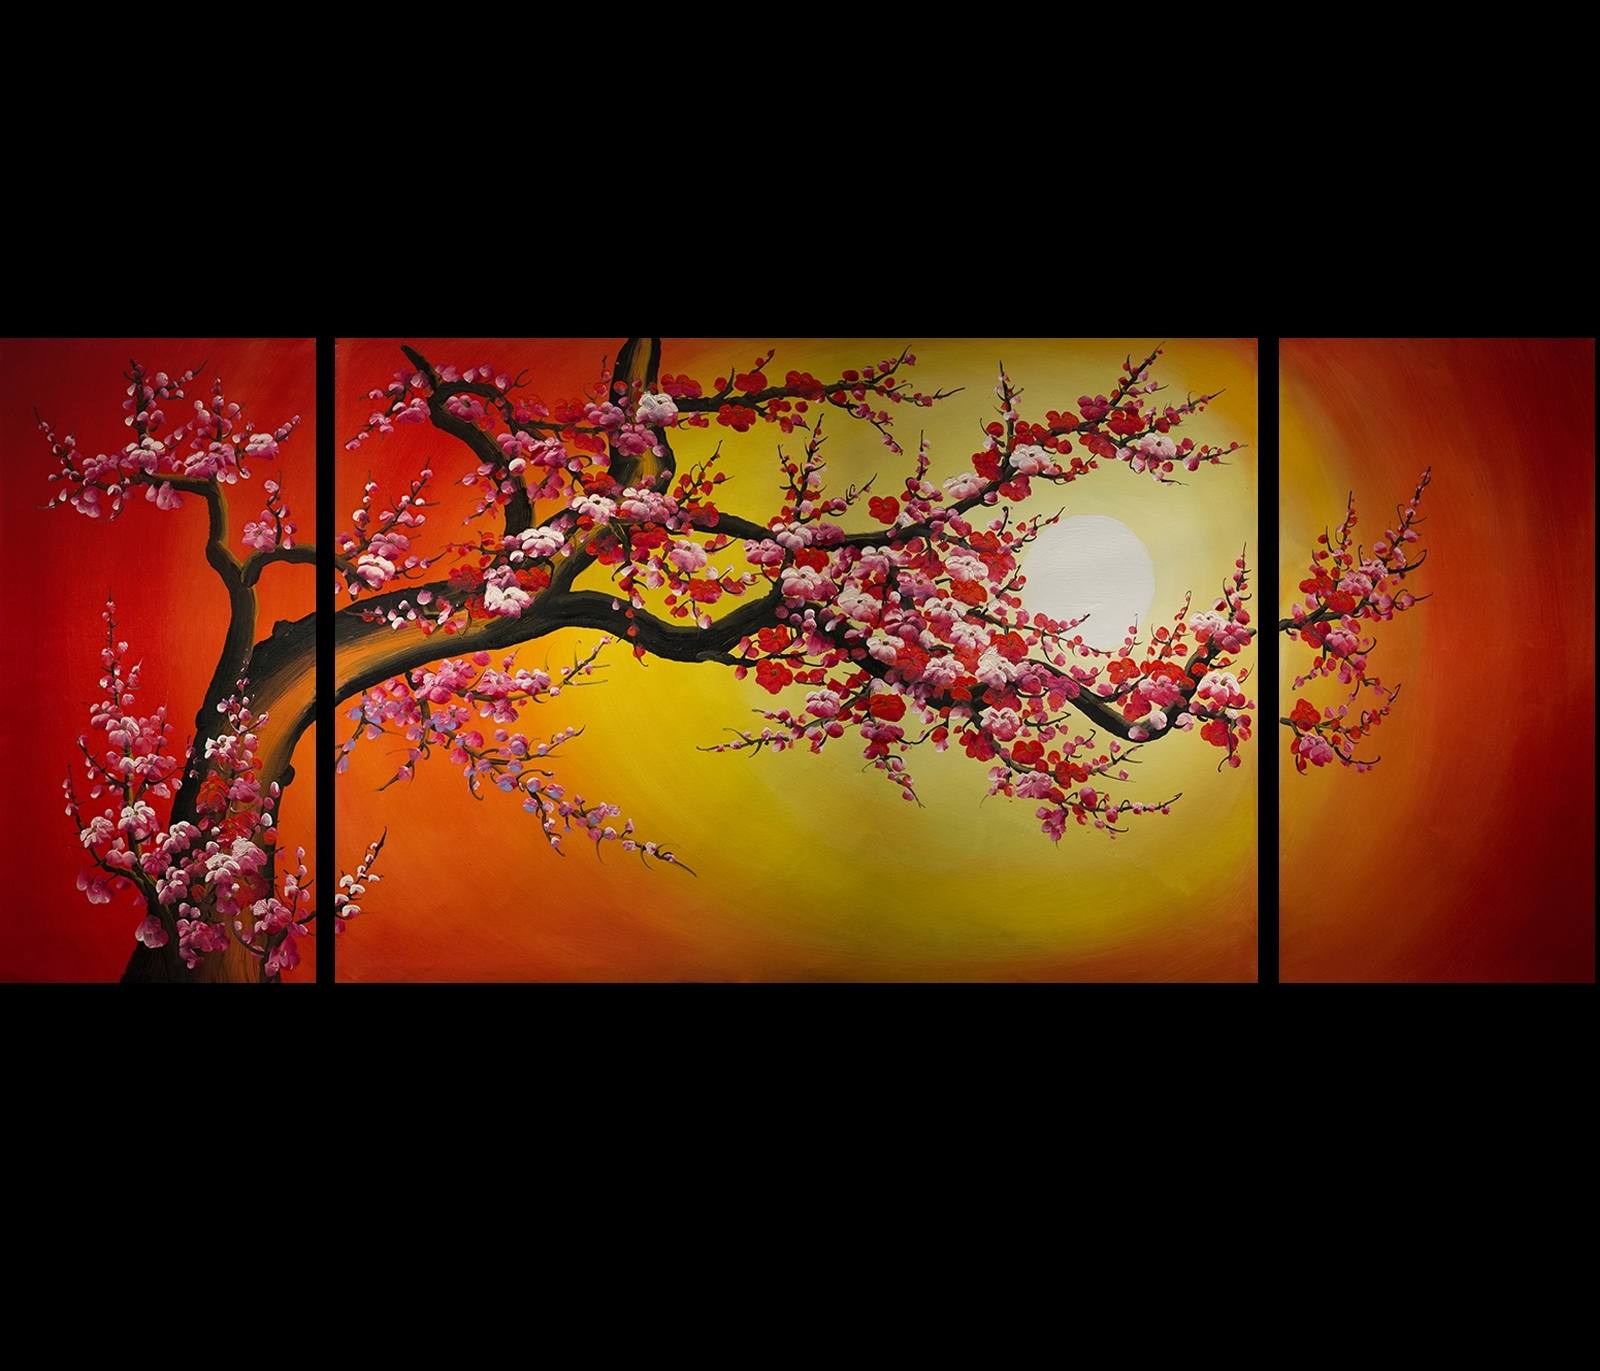 Chinese Cherry Blossom Feng Shui Oil Painting Abstract Art Modern Pertaining To 2018 Abstract Cherry Blossom Wall Art (View 11 of 20)